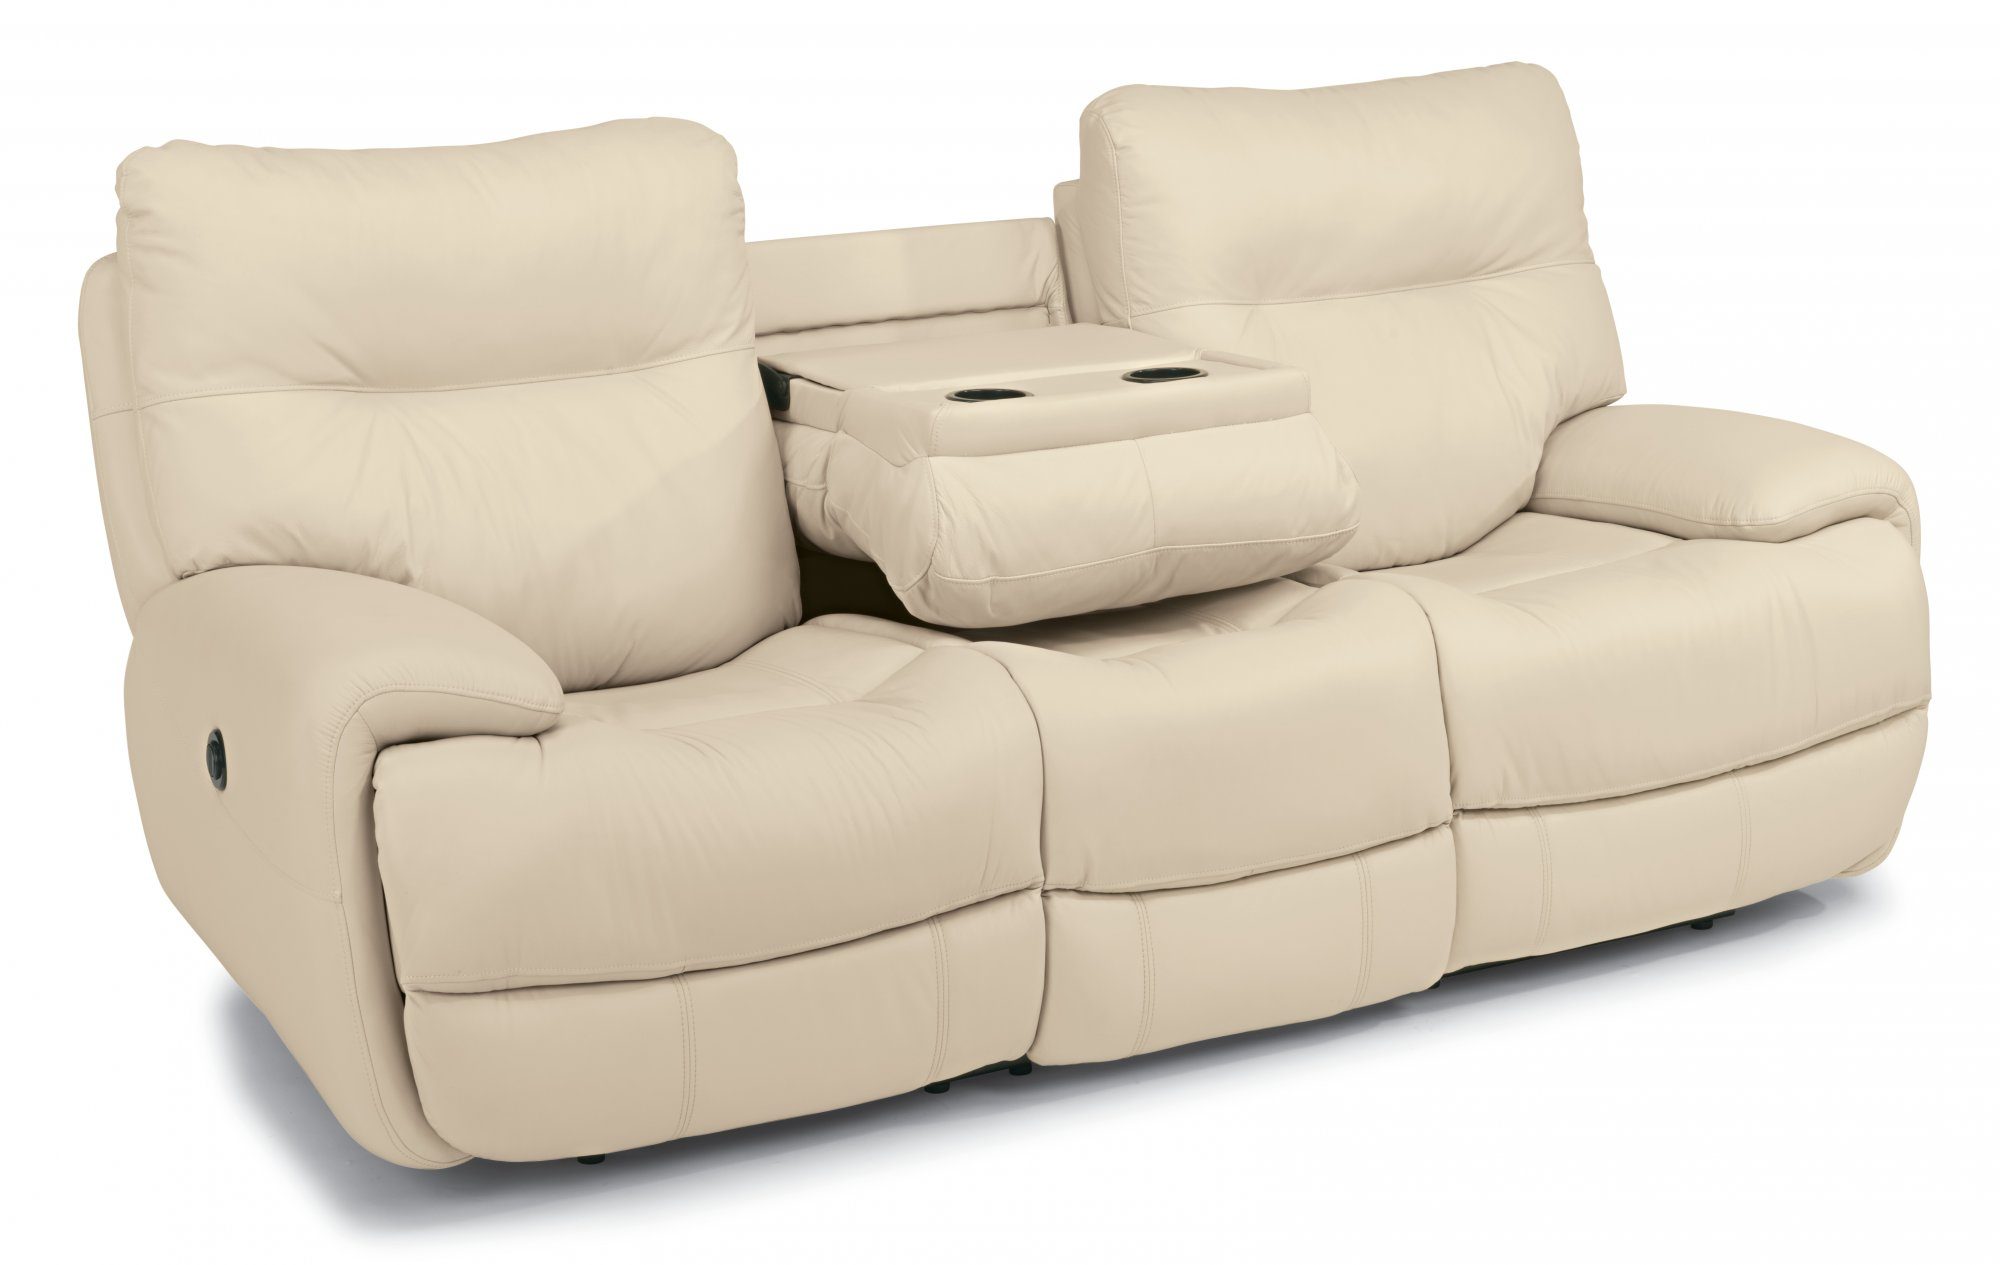 flexsteel double reclining sofa reviews sling outdoor evian leather power w c shaped arms share via email download a high resolution image